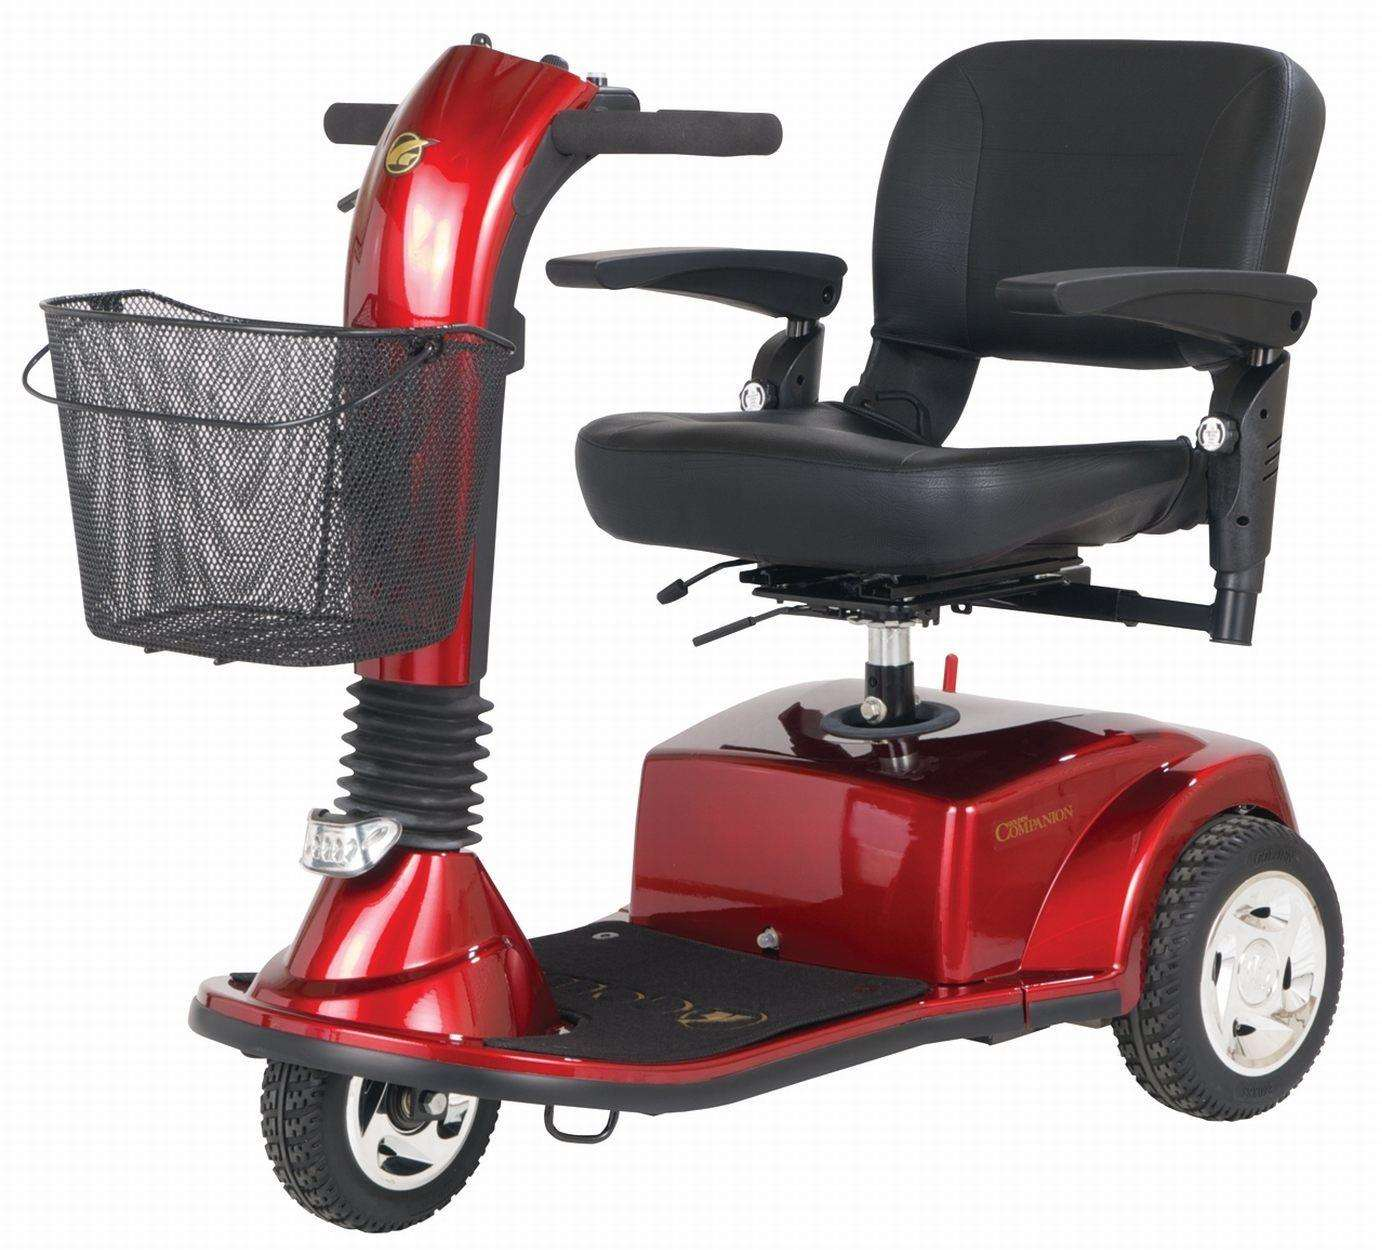 Red mobility scooter. Picture: Zdlpwebb Creative Commons Wikimedia (6722718)